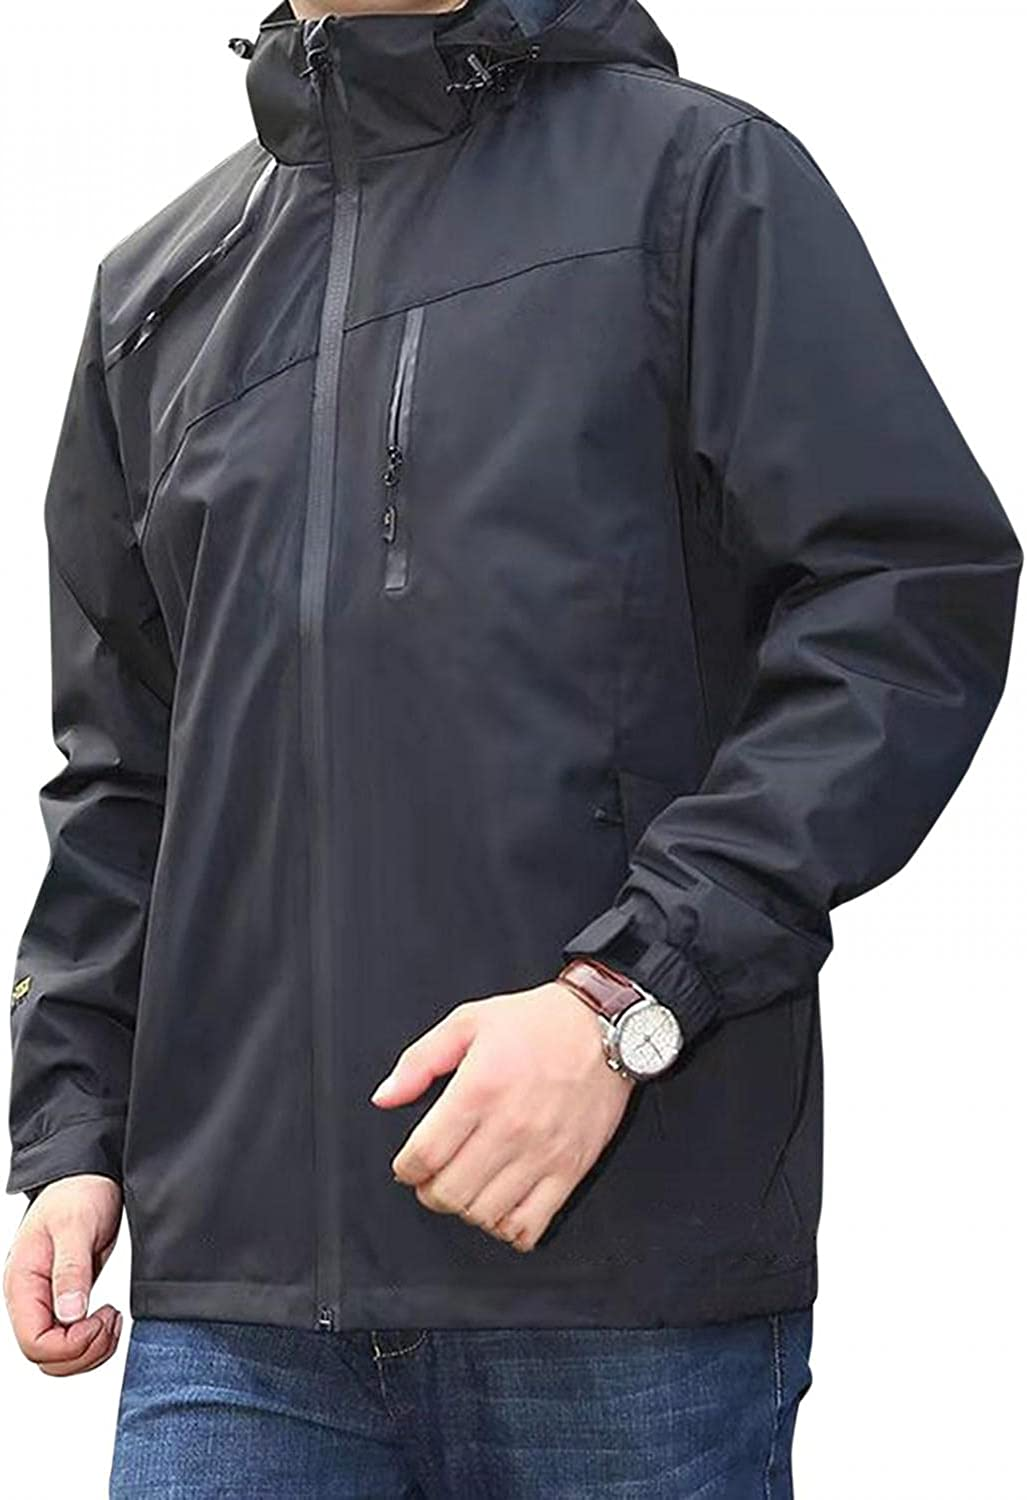 Huangse Waterproof Rain Jacket with Hood for Men Pockets Breathable Windbreaker for Outdoor Hiking Climbing